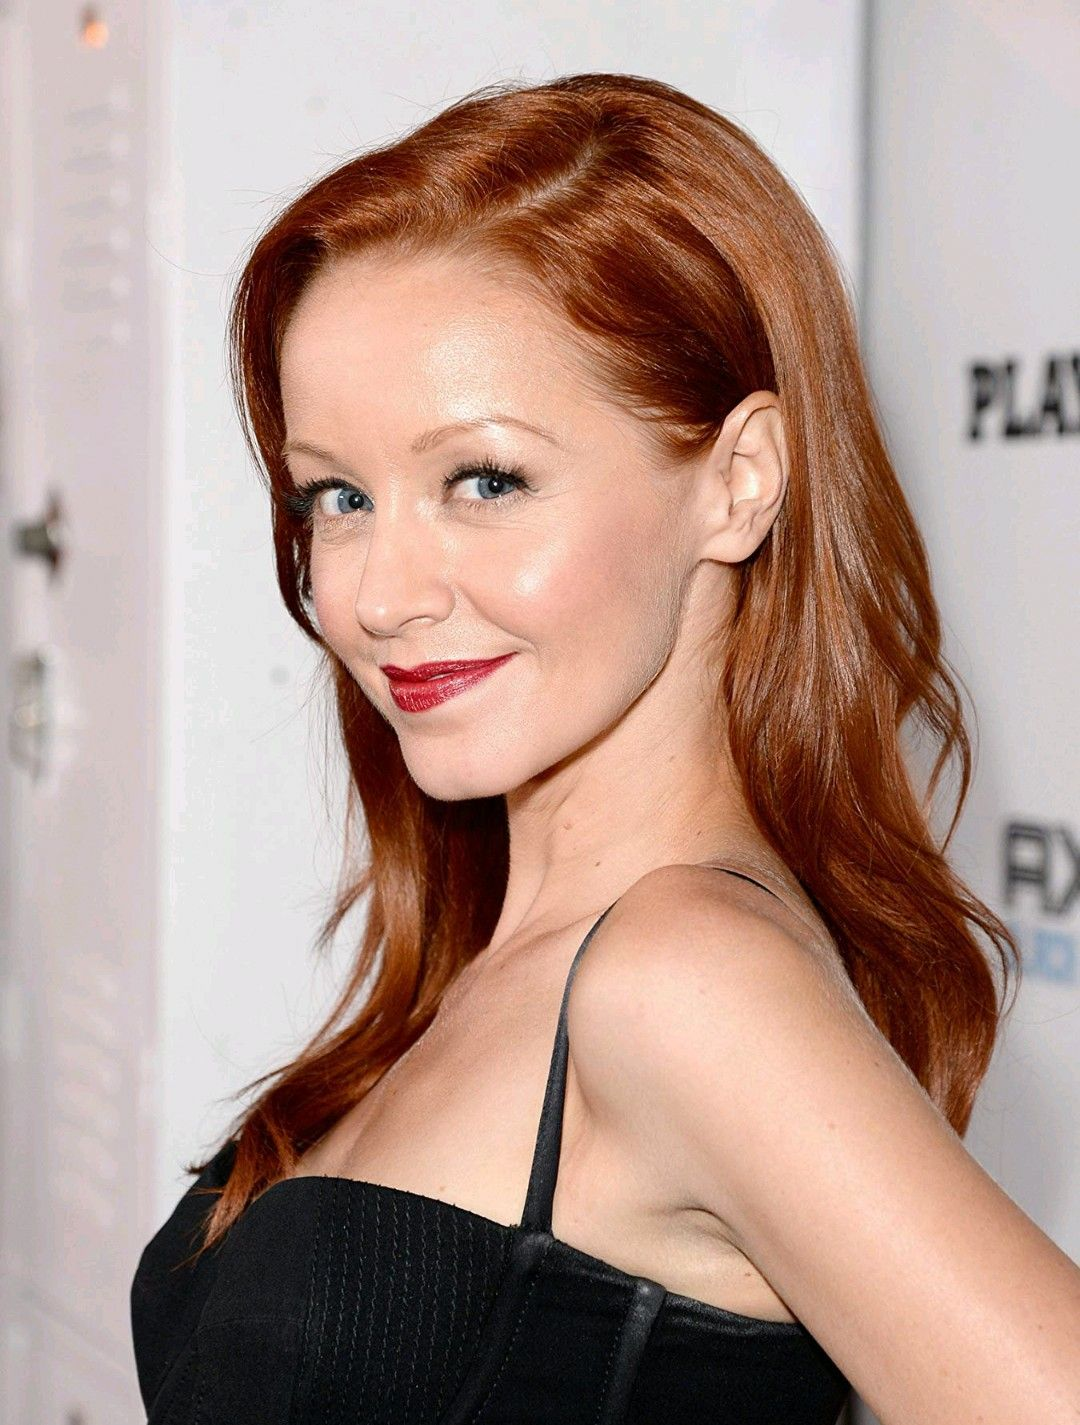 Pin By Cristian Garavito On Lindy Booth In 2020 Lindy Booth Redhead Beauty Redheads